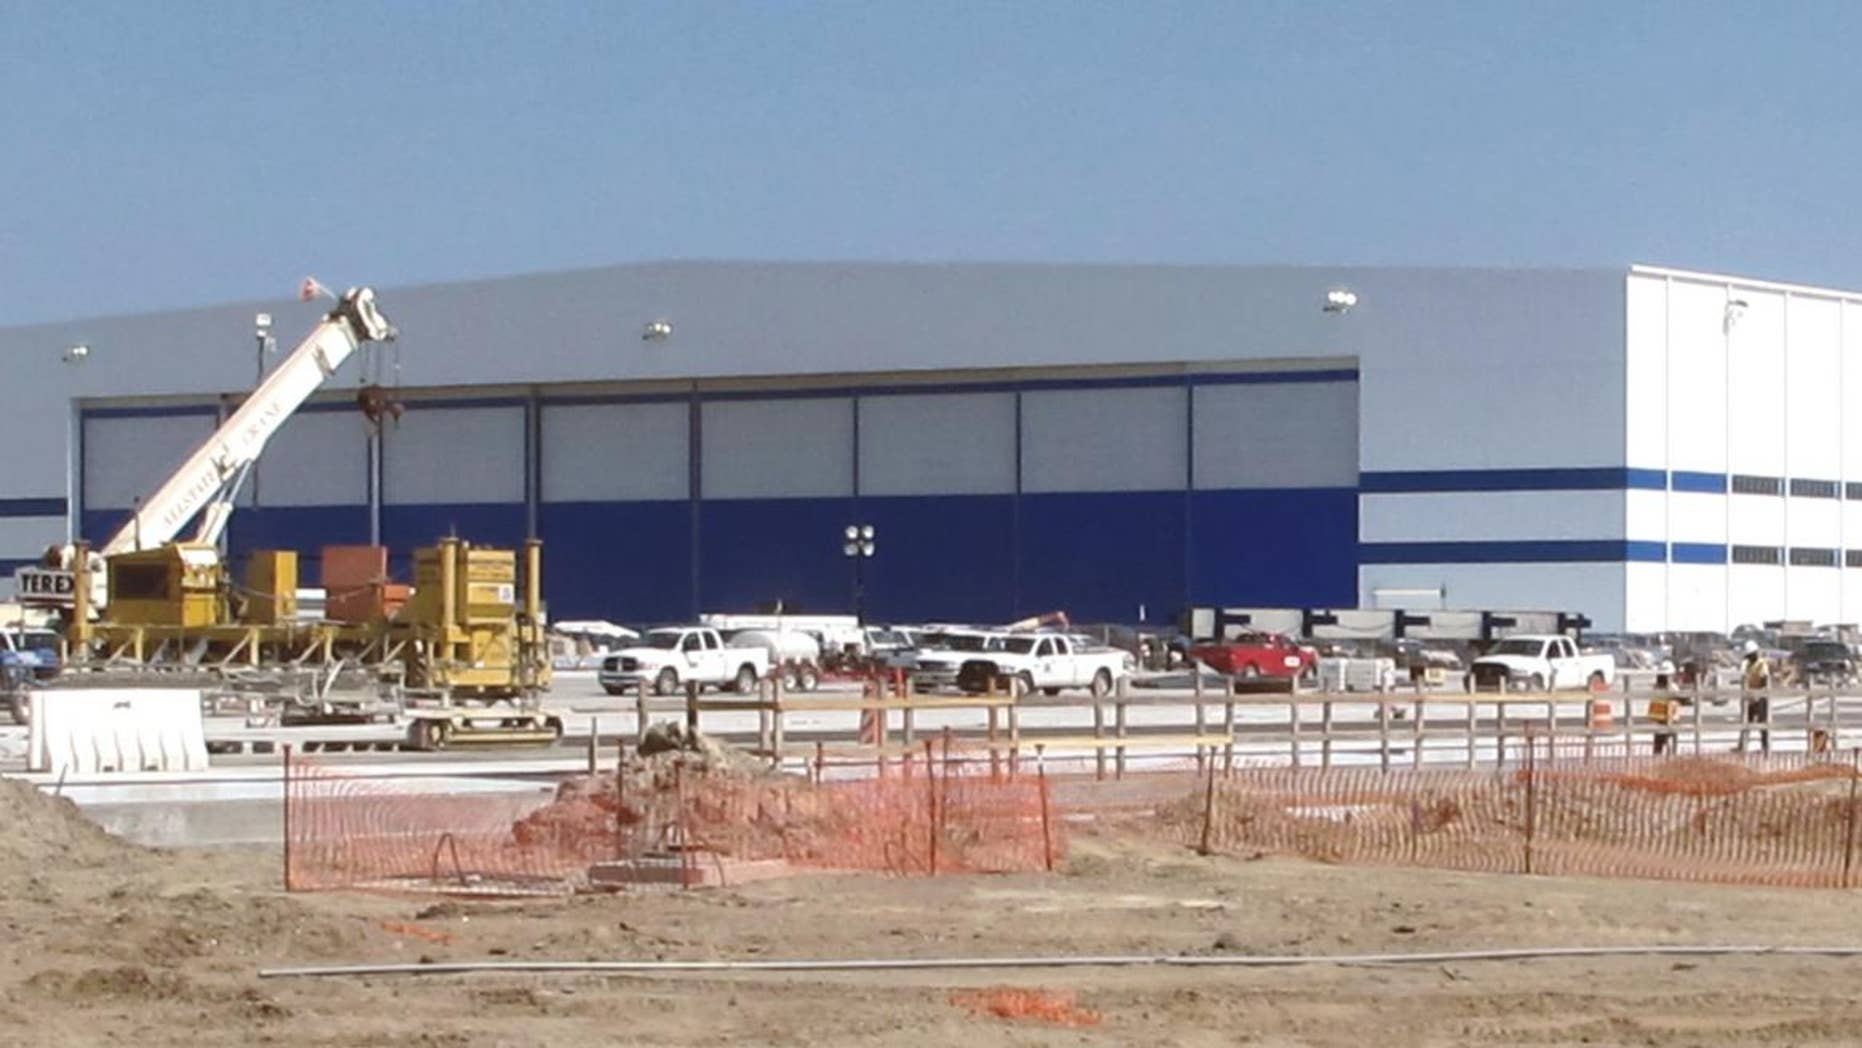 Work continues Tuesday, April 19, 2011, at the Boeing's new aircraft assembly site in North Charleston, S.C. (AP Photo/Bruce Smith)